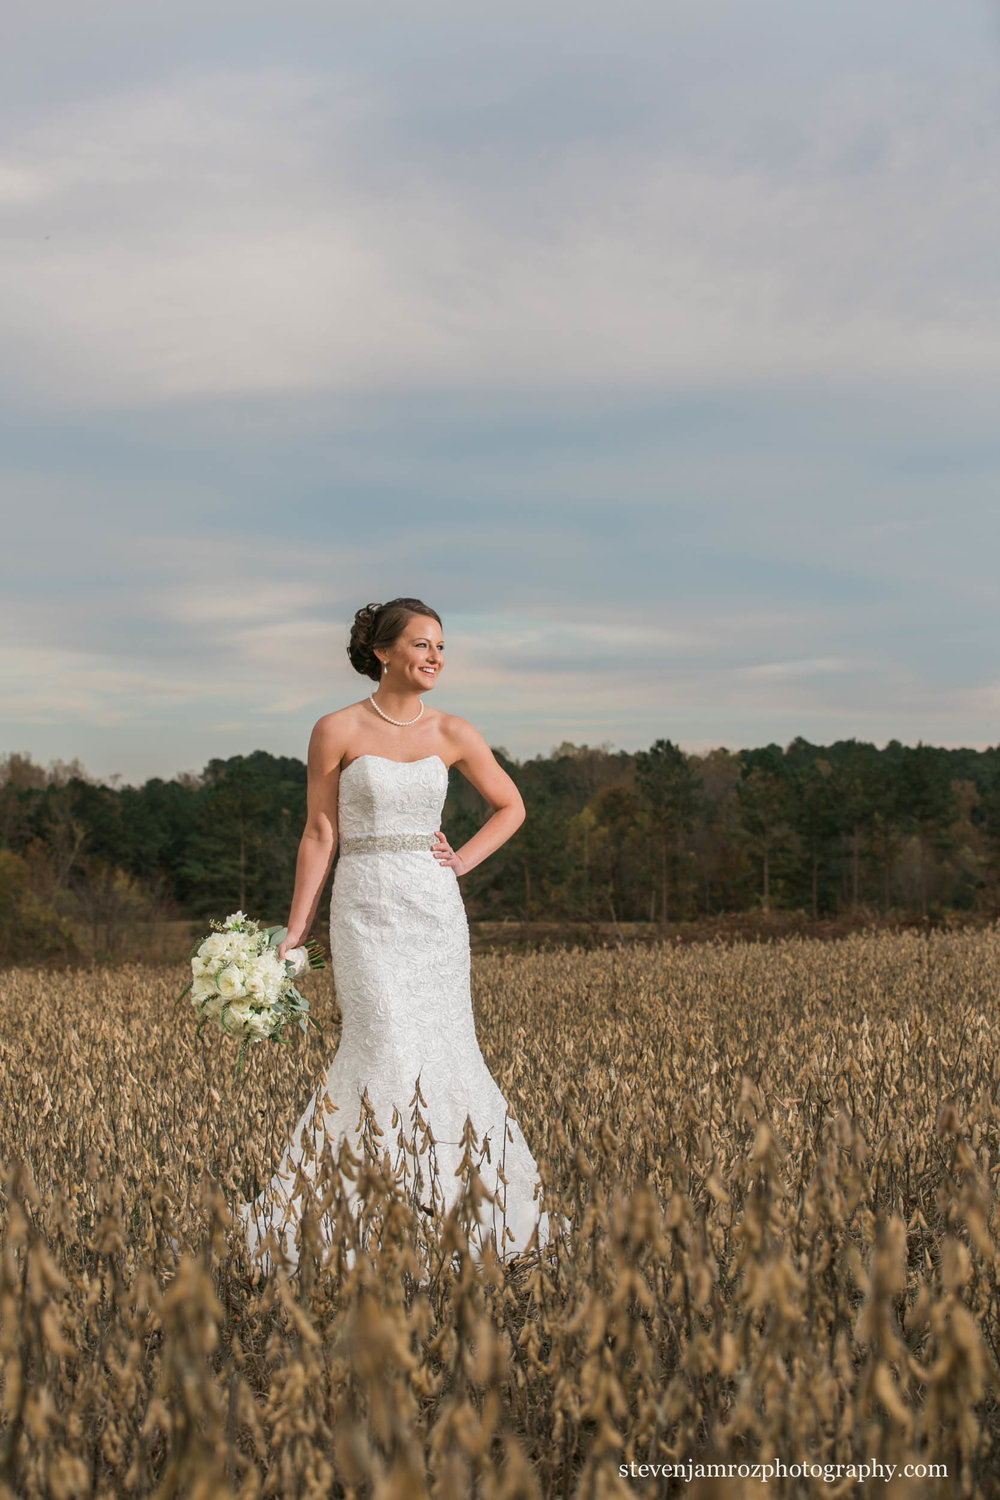 bride-in-field-louisburg-nc-wedding-steven-jamroz-0746.jpg